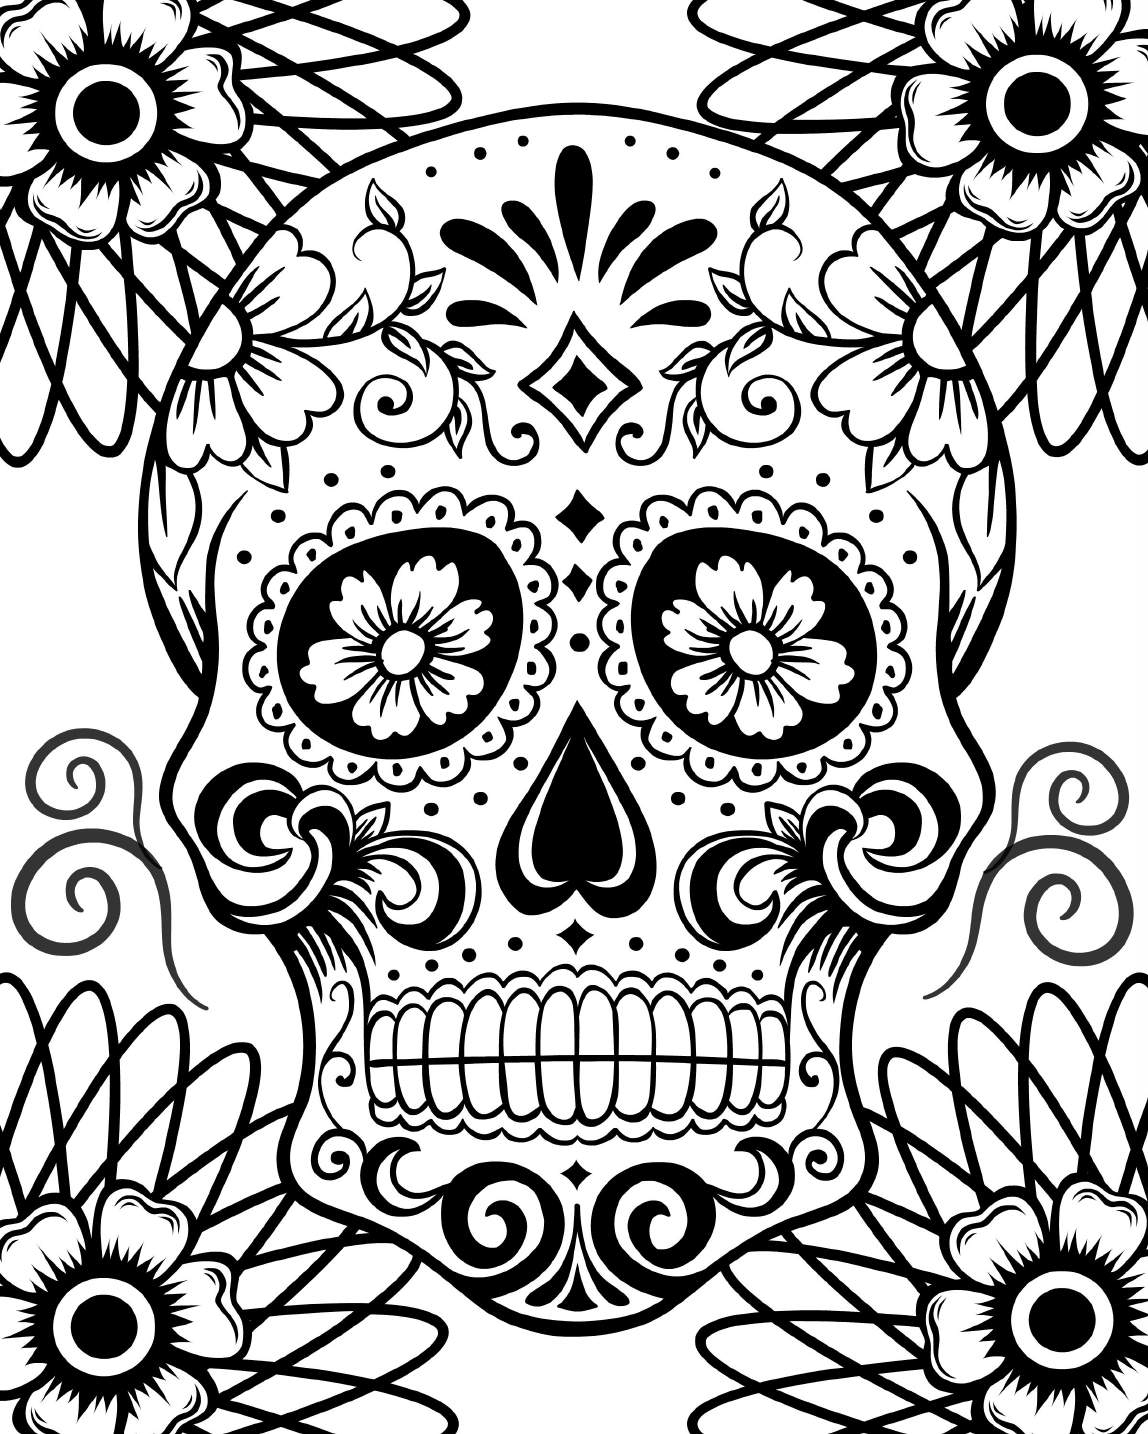 1148x1434 Skull Day Of The Dead Coloring Day Of The Dead Skull Coloring